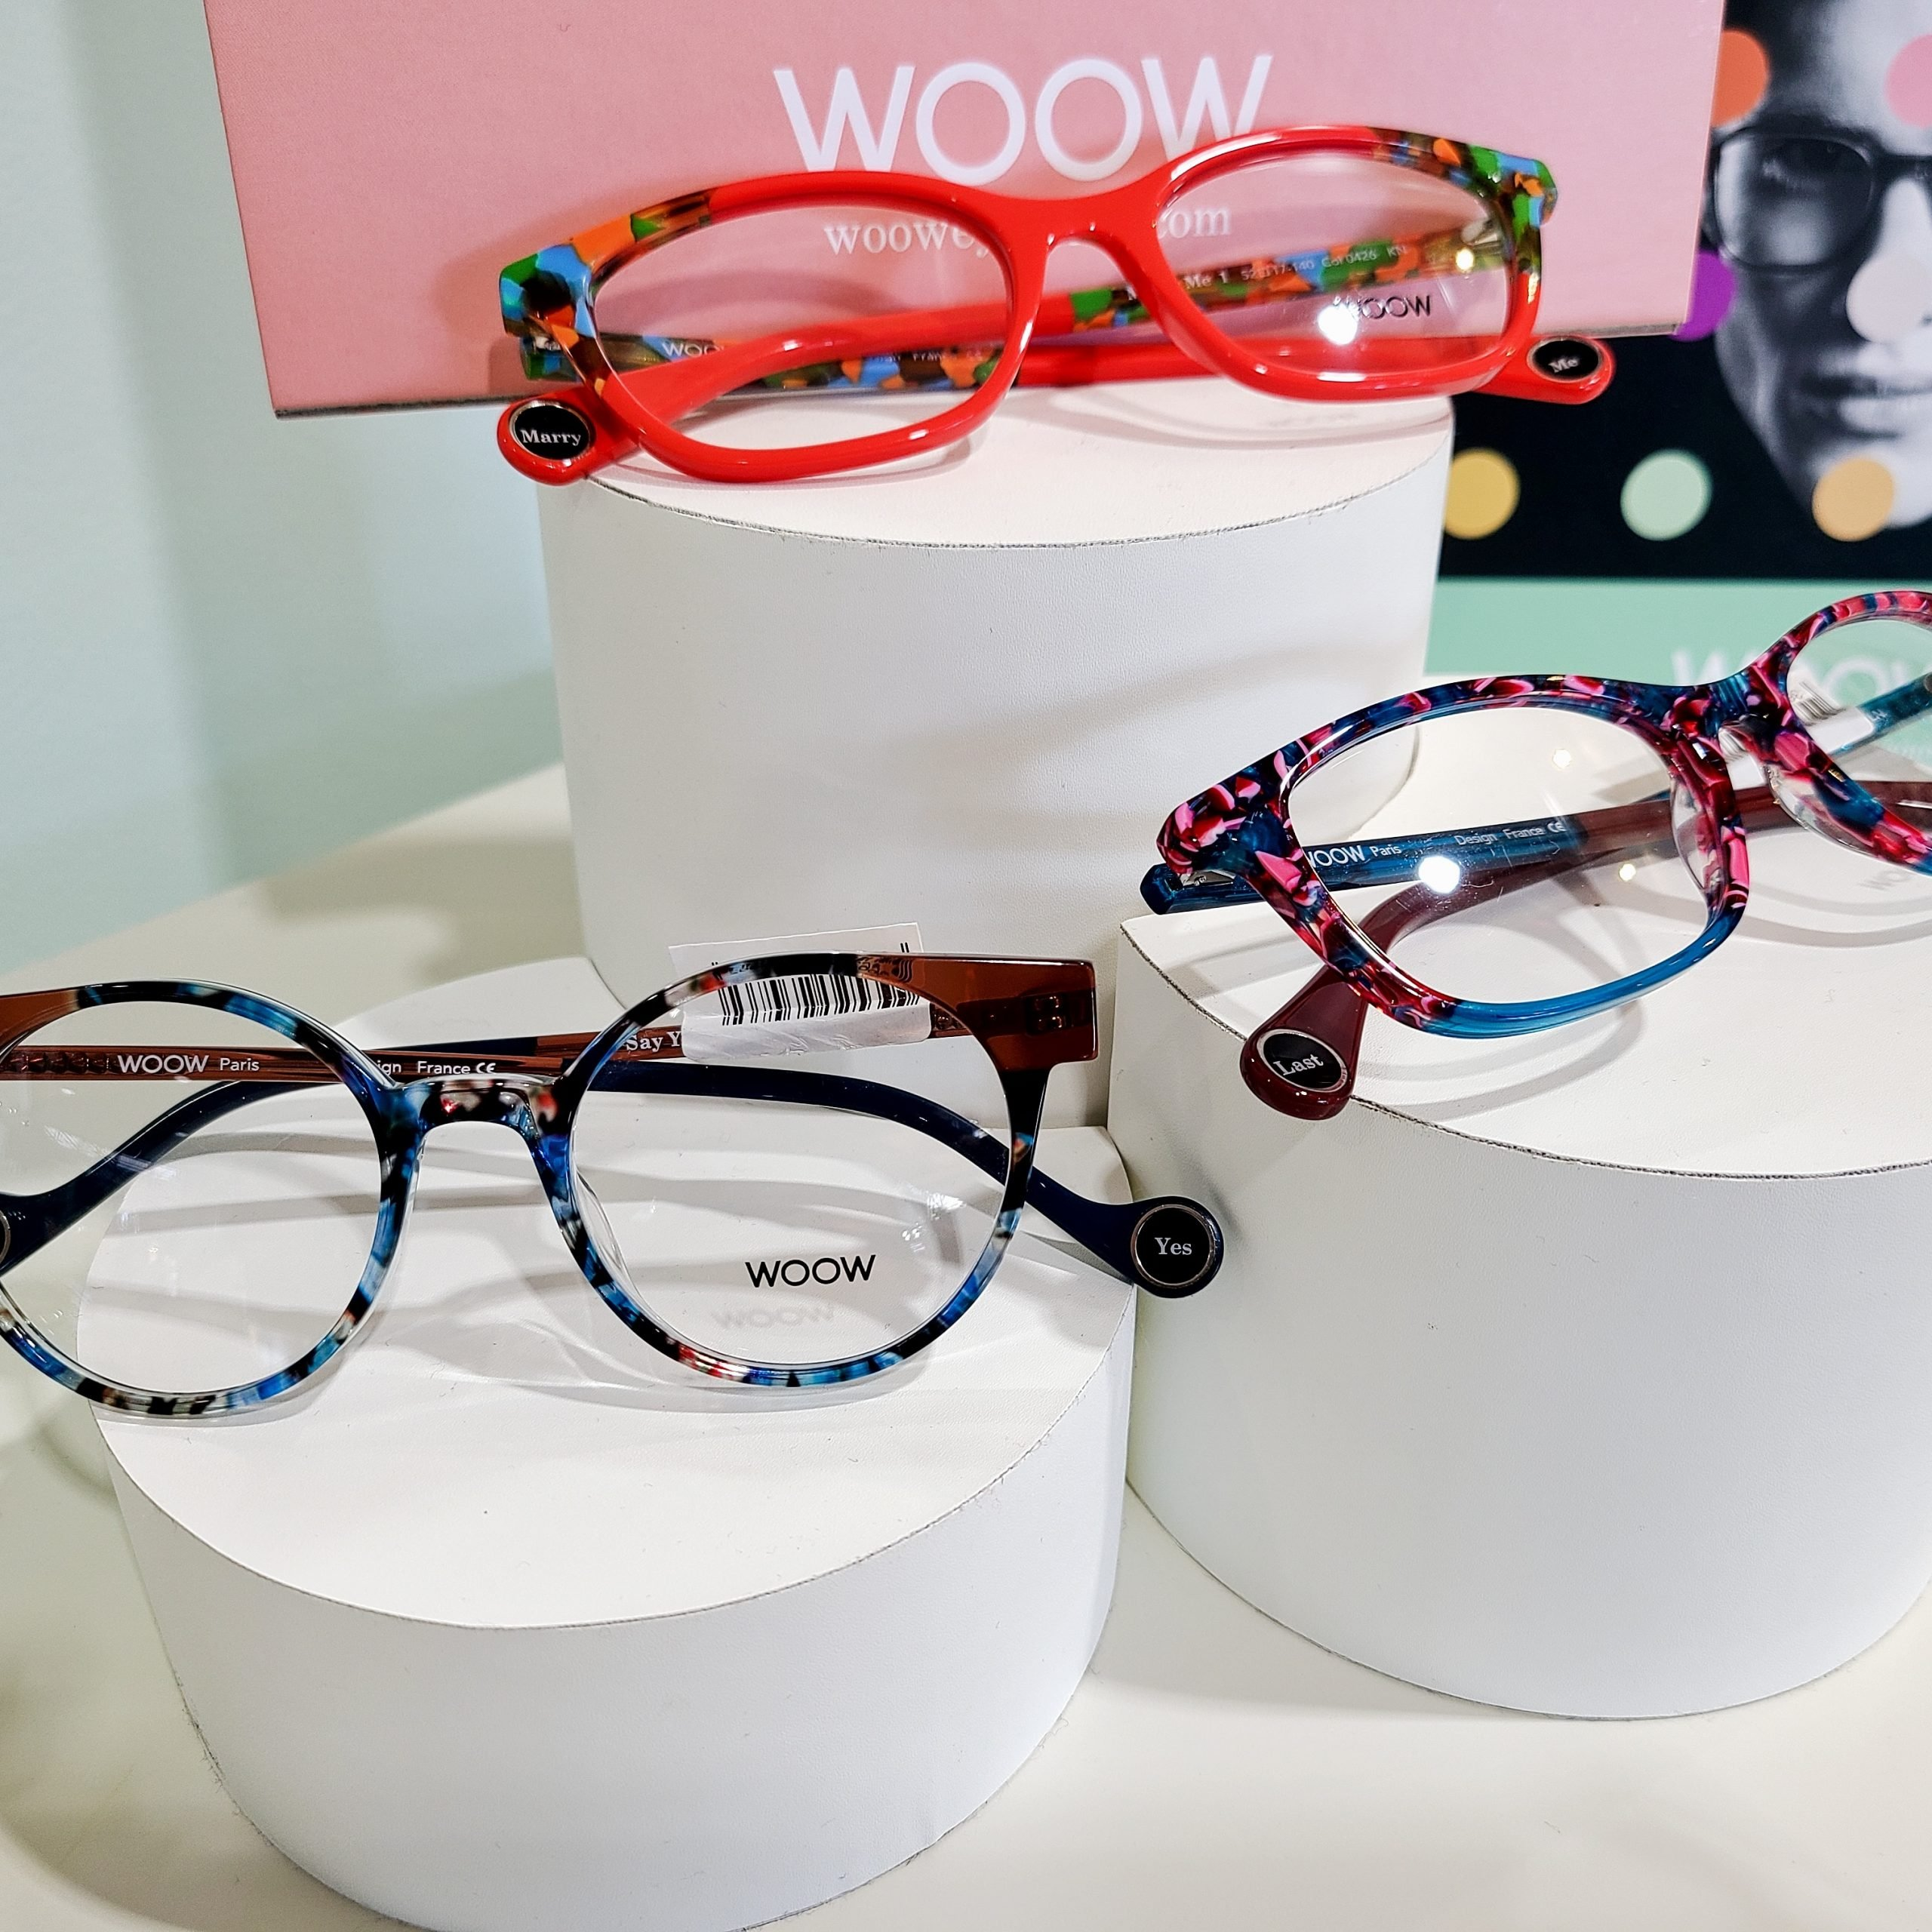 Woow frames on display